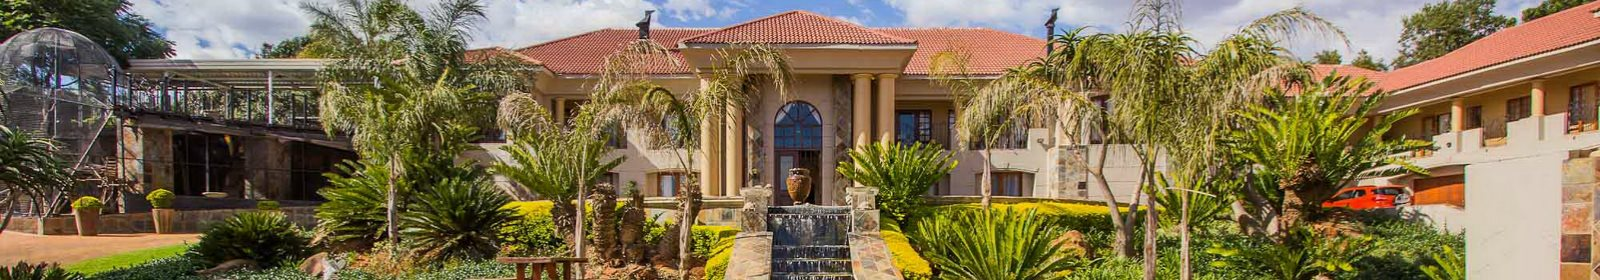 Pretoria East property market tops R8bn